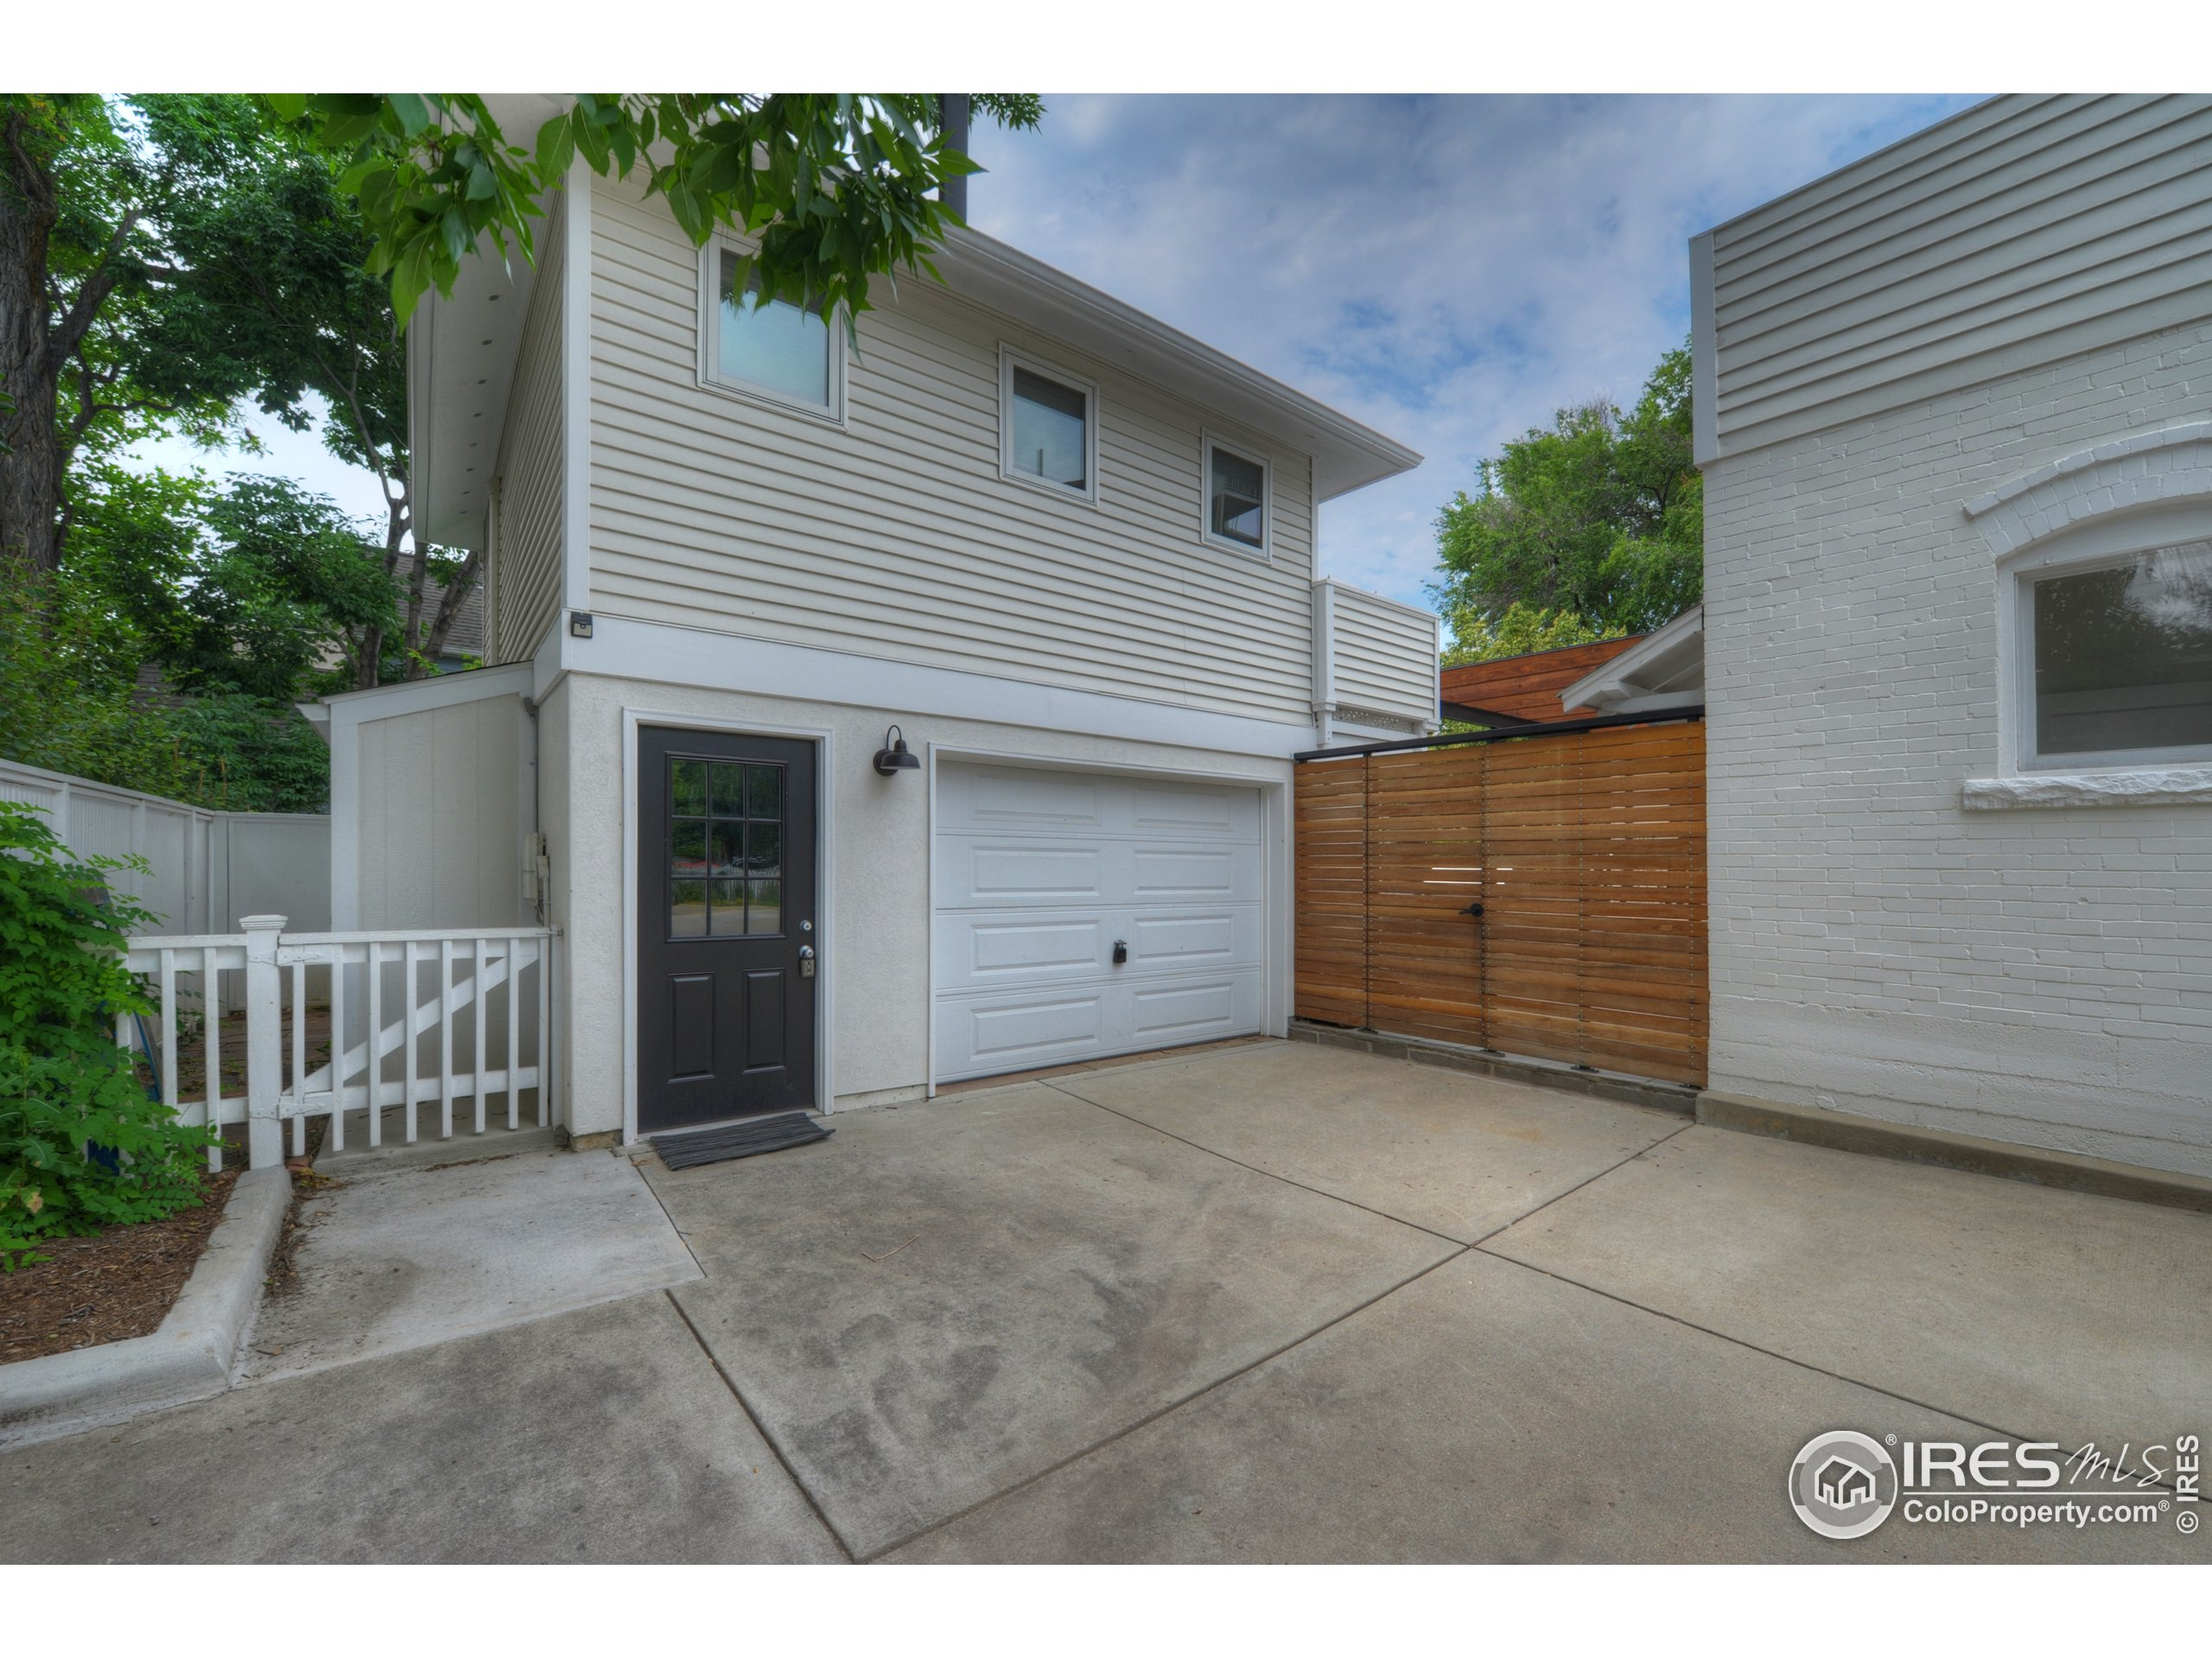 detached garage and above private workspace